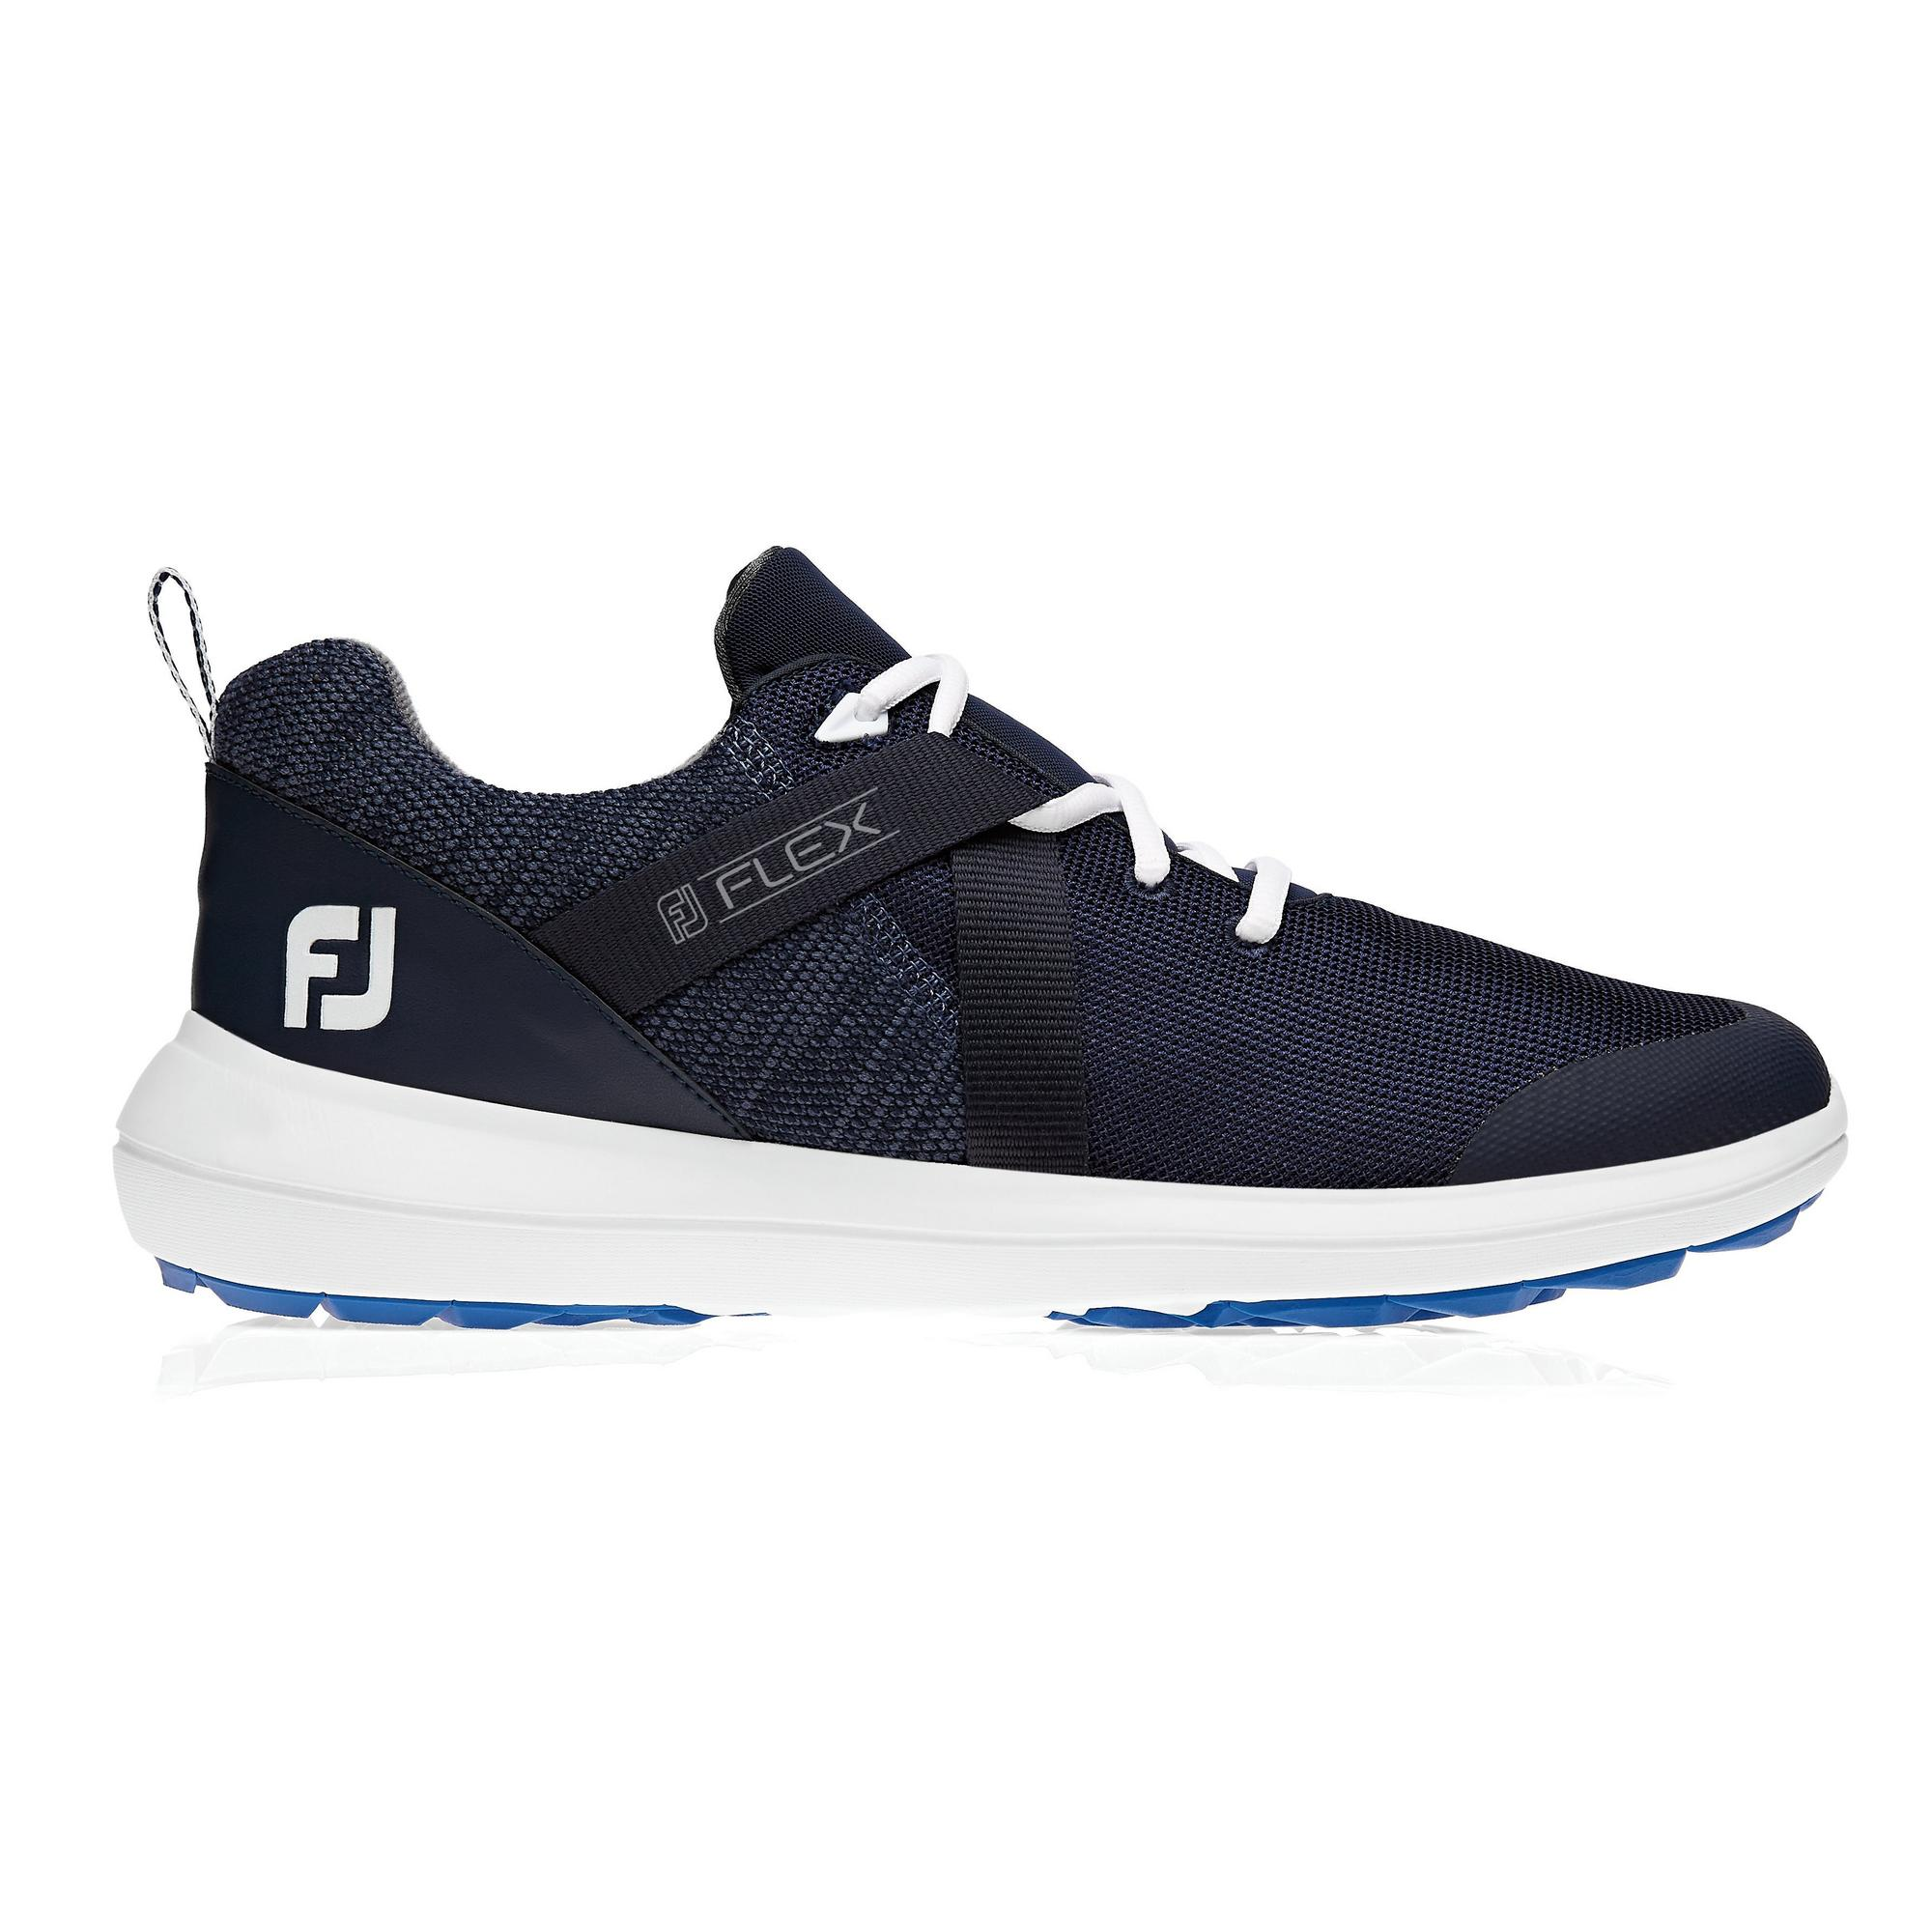 Men's Flex Spikeless Golf Shoe - Navy